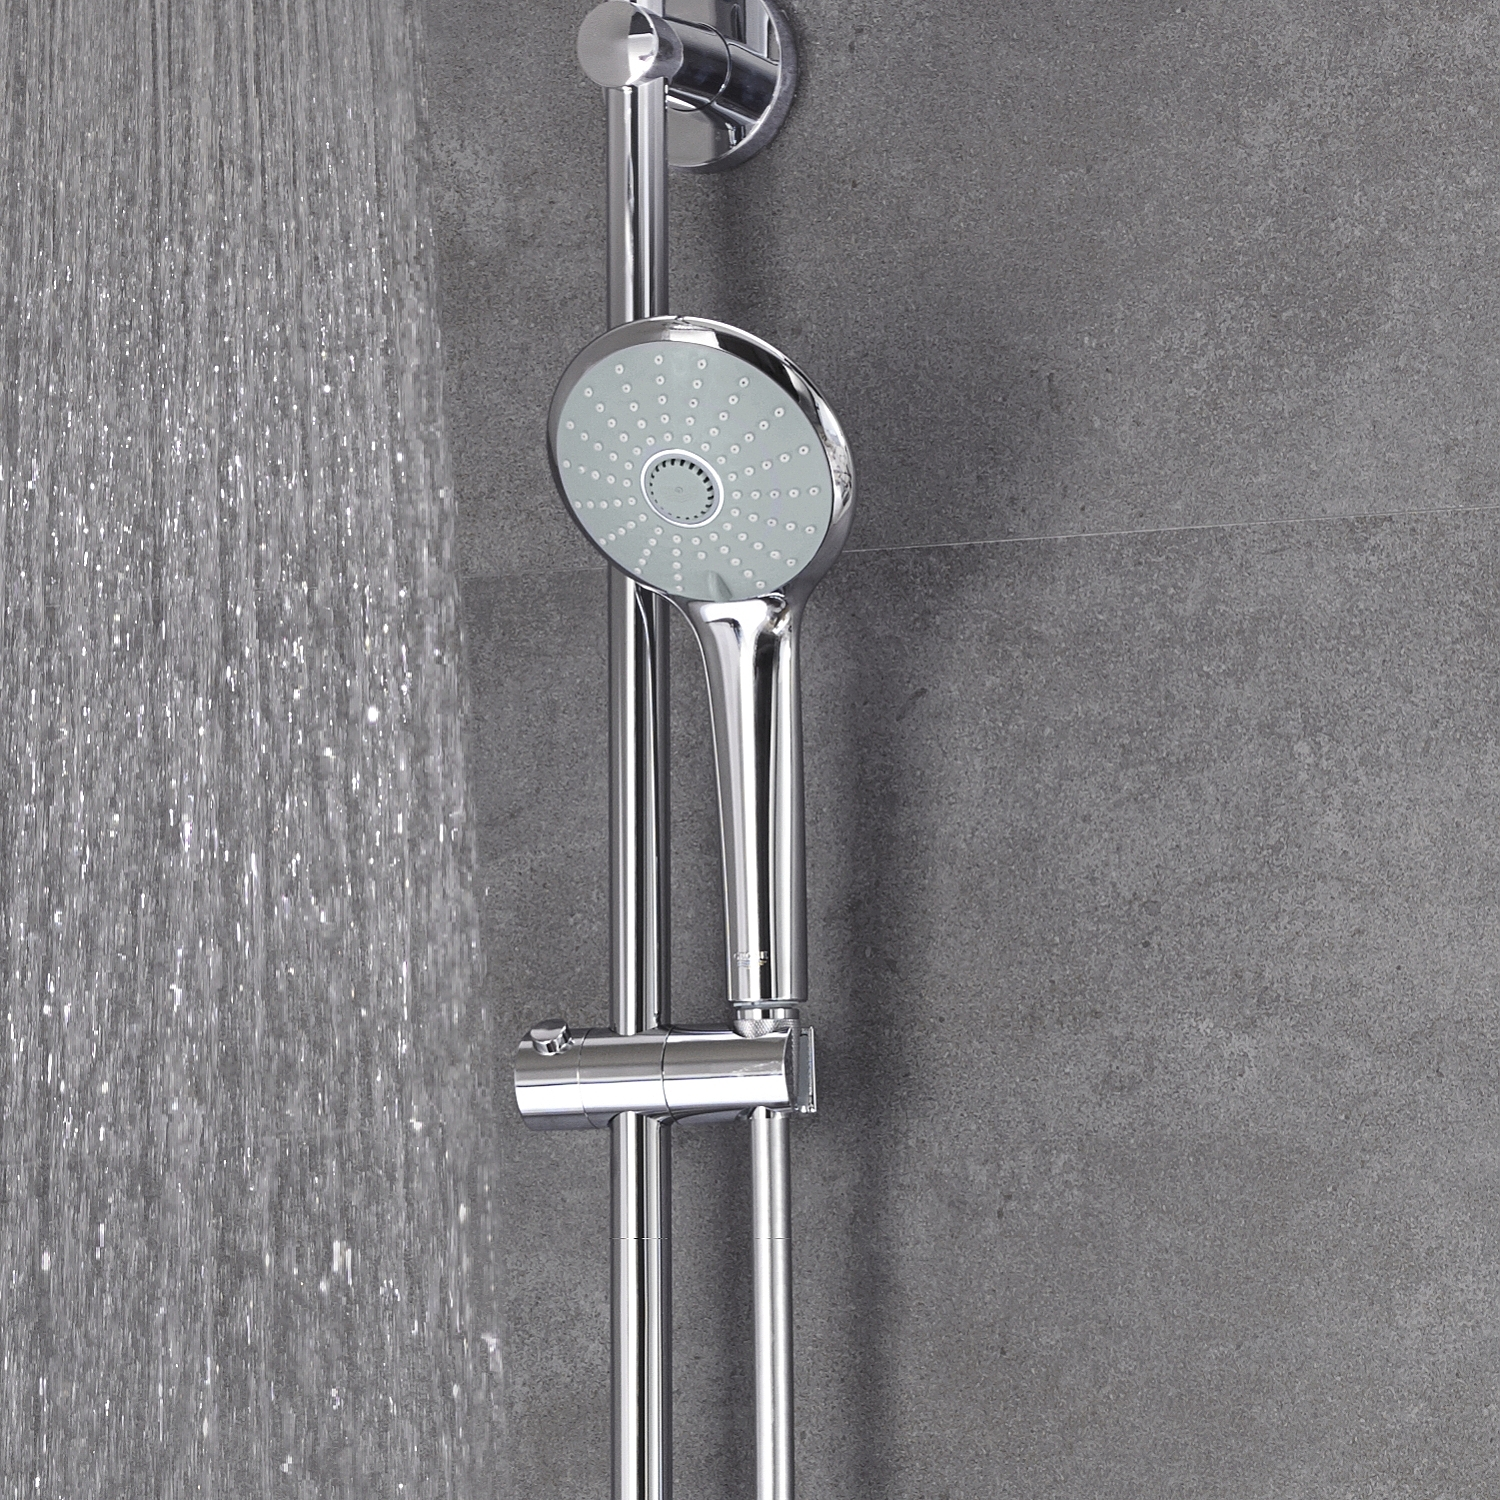 Grohe Euphoria Douchesysteem 180 Chroom Grohe Euphoria Xxl 210 Douchesysteem Met Thermostaatkraan Chroom 27964000